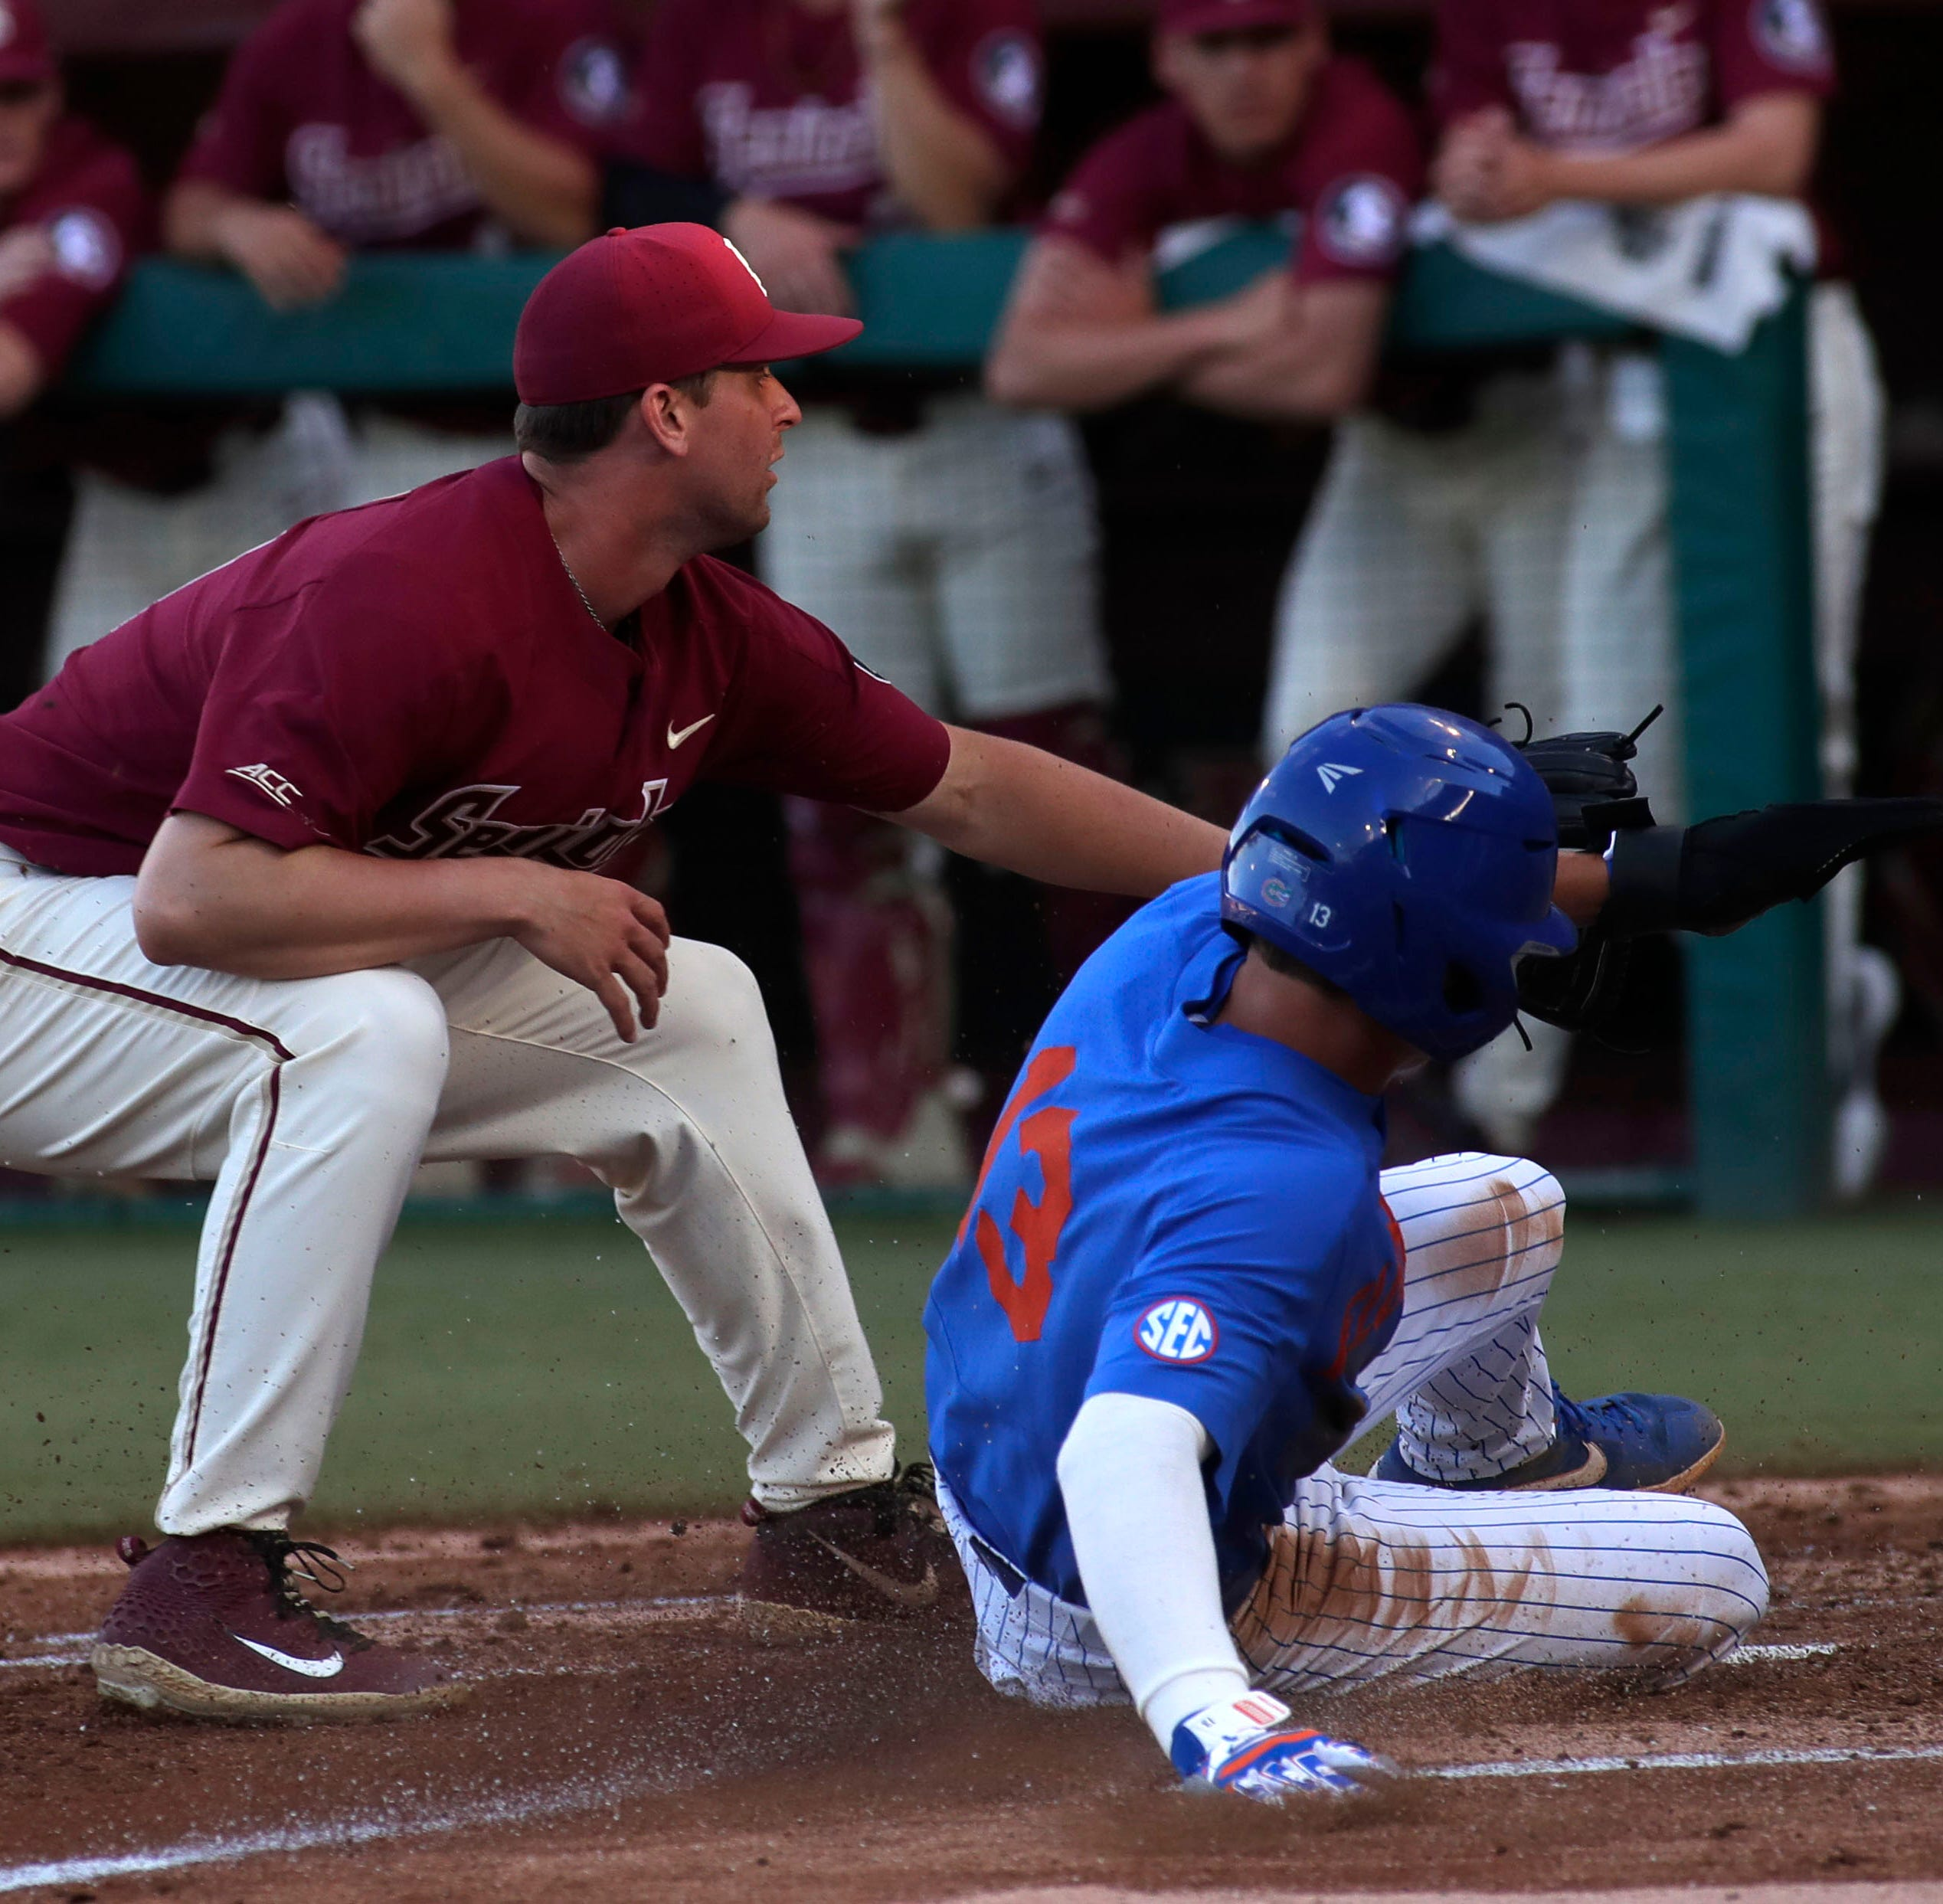 Florida State baseball outdueled in 11th straight loss to UF